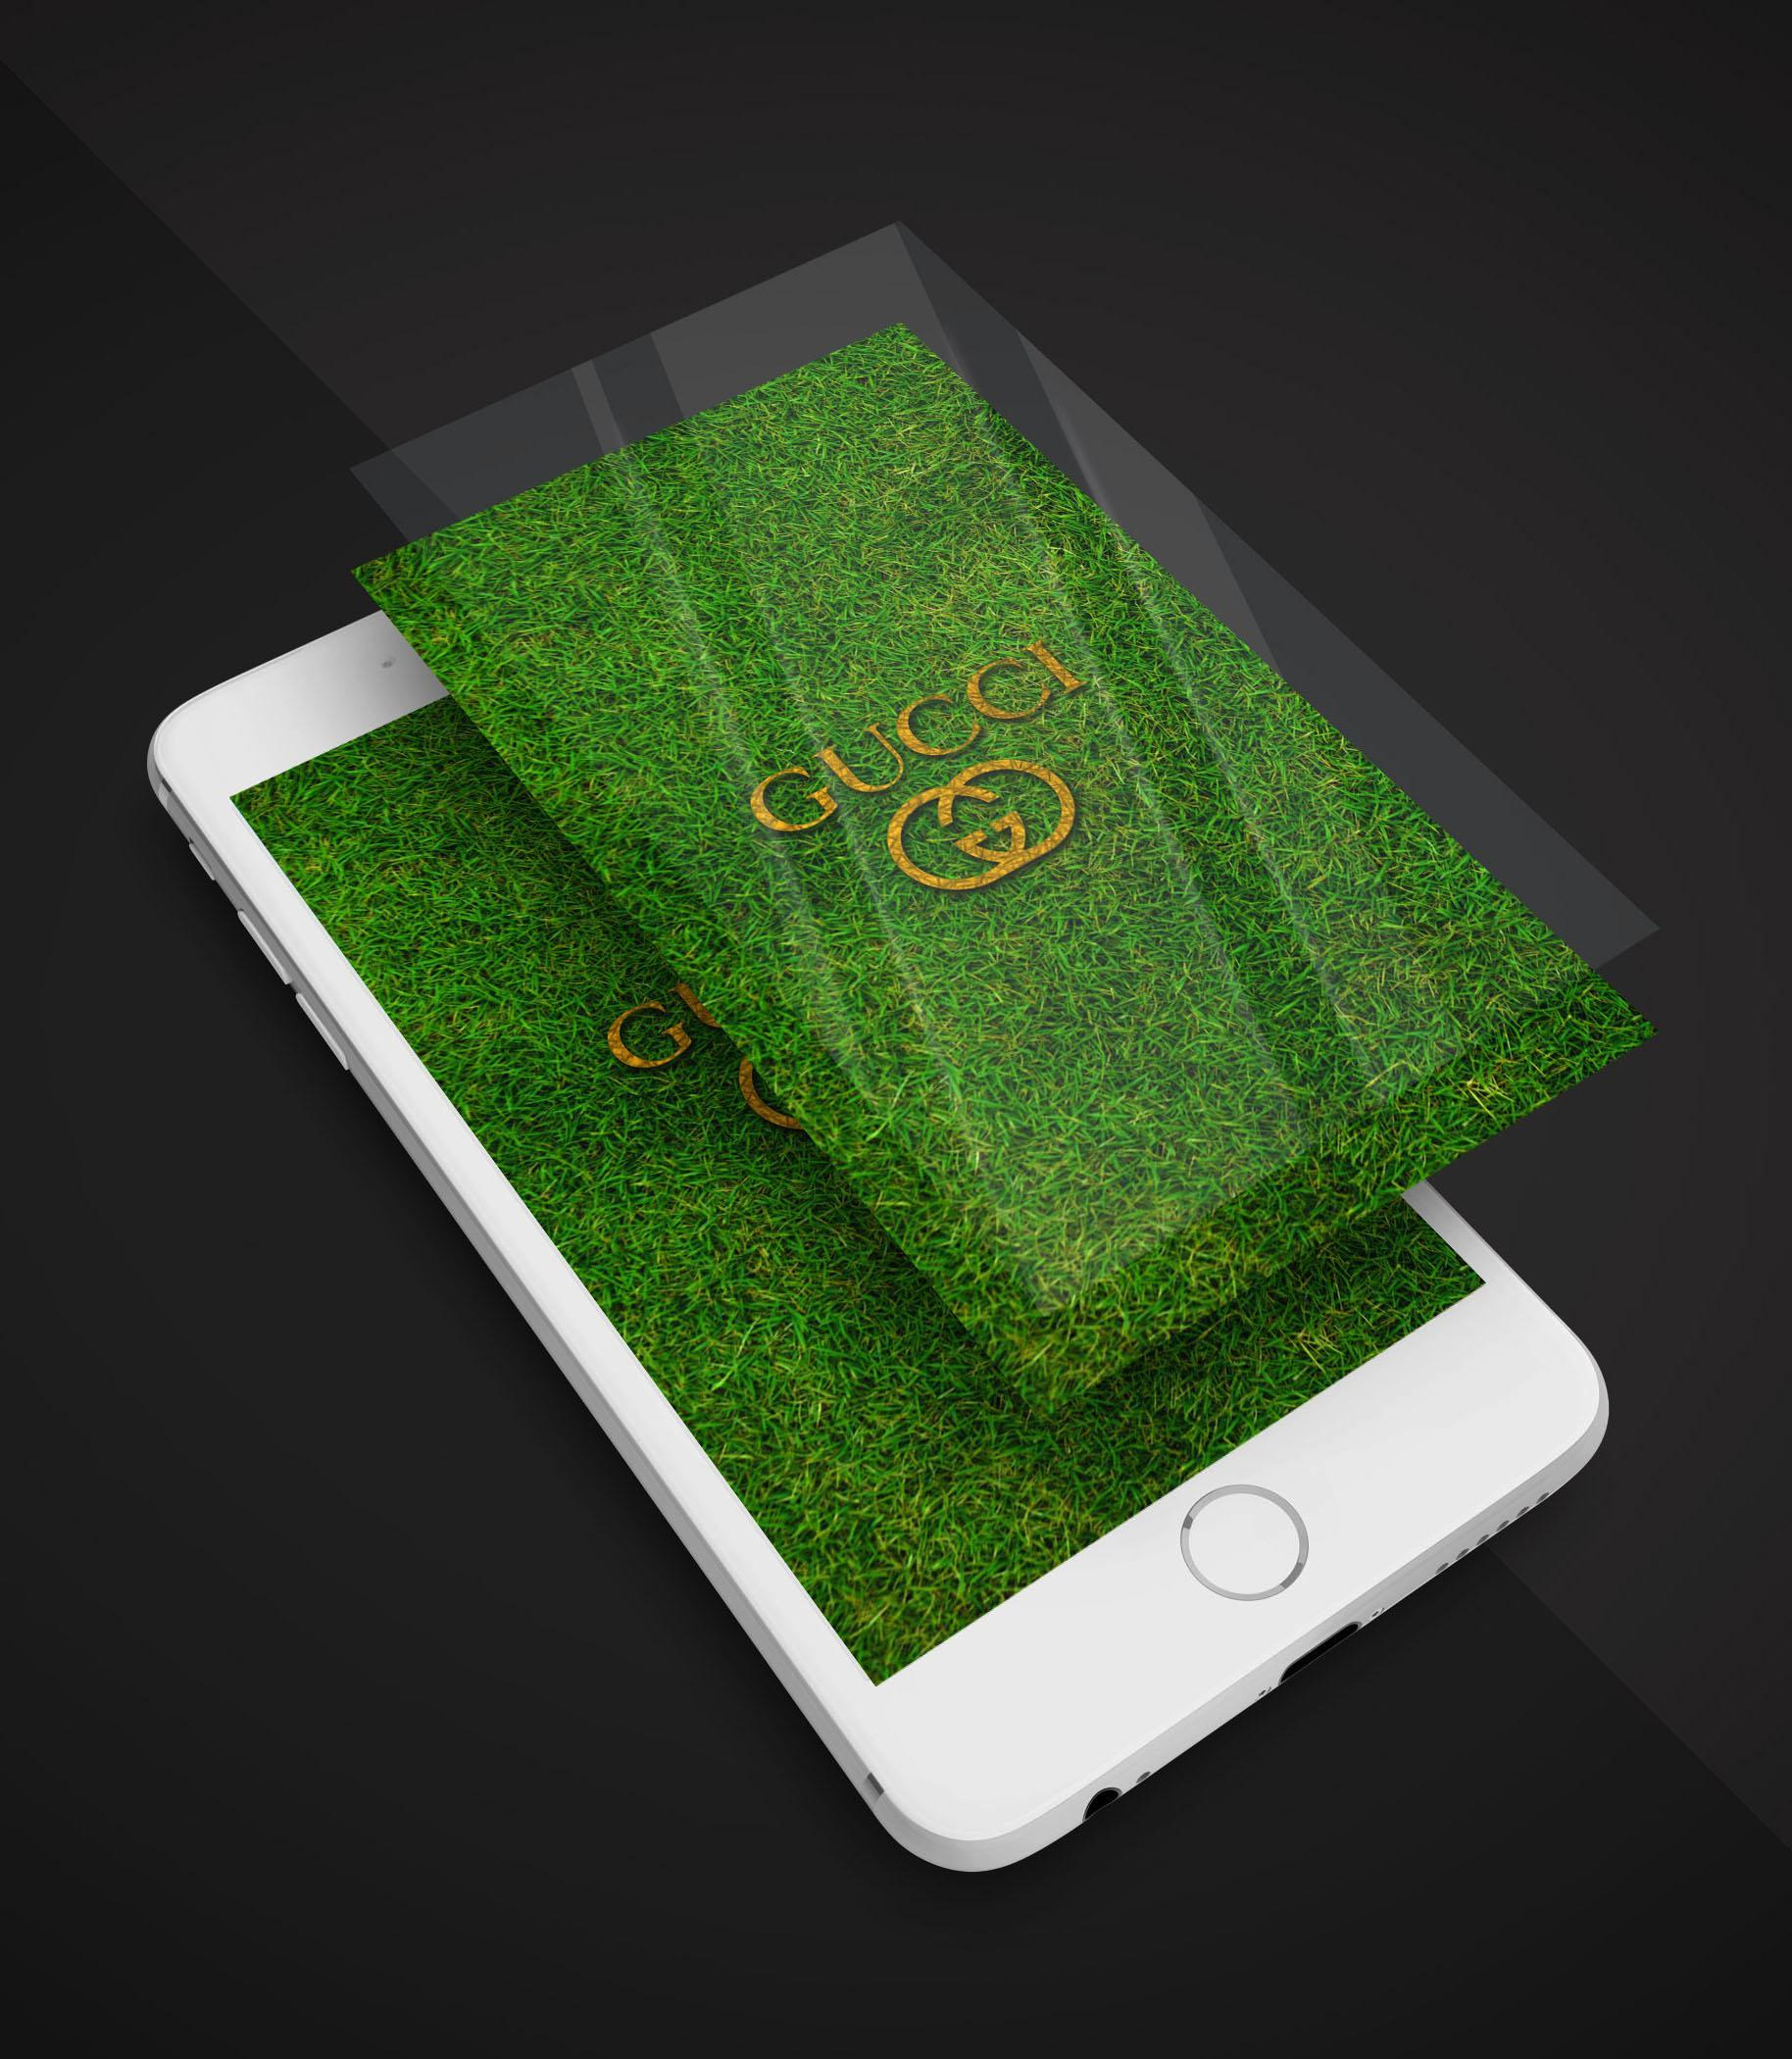 Gucci Wallpapers Ultra Hd 4k Pour Android